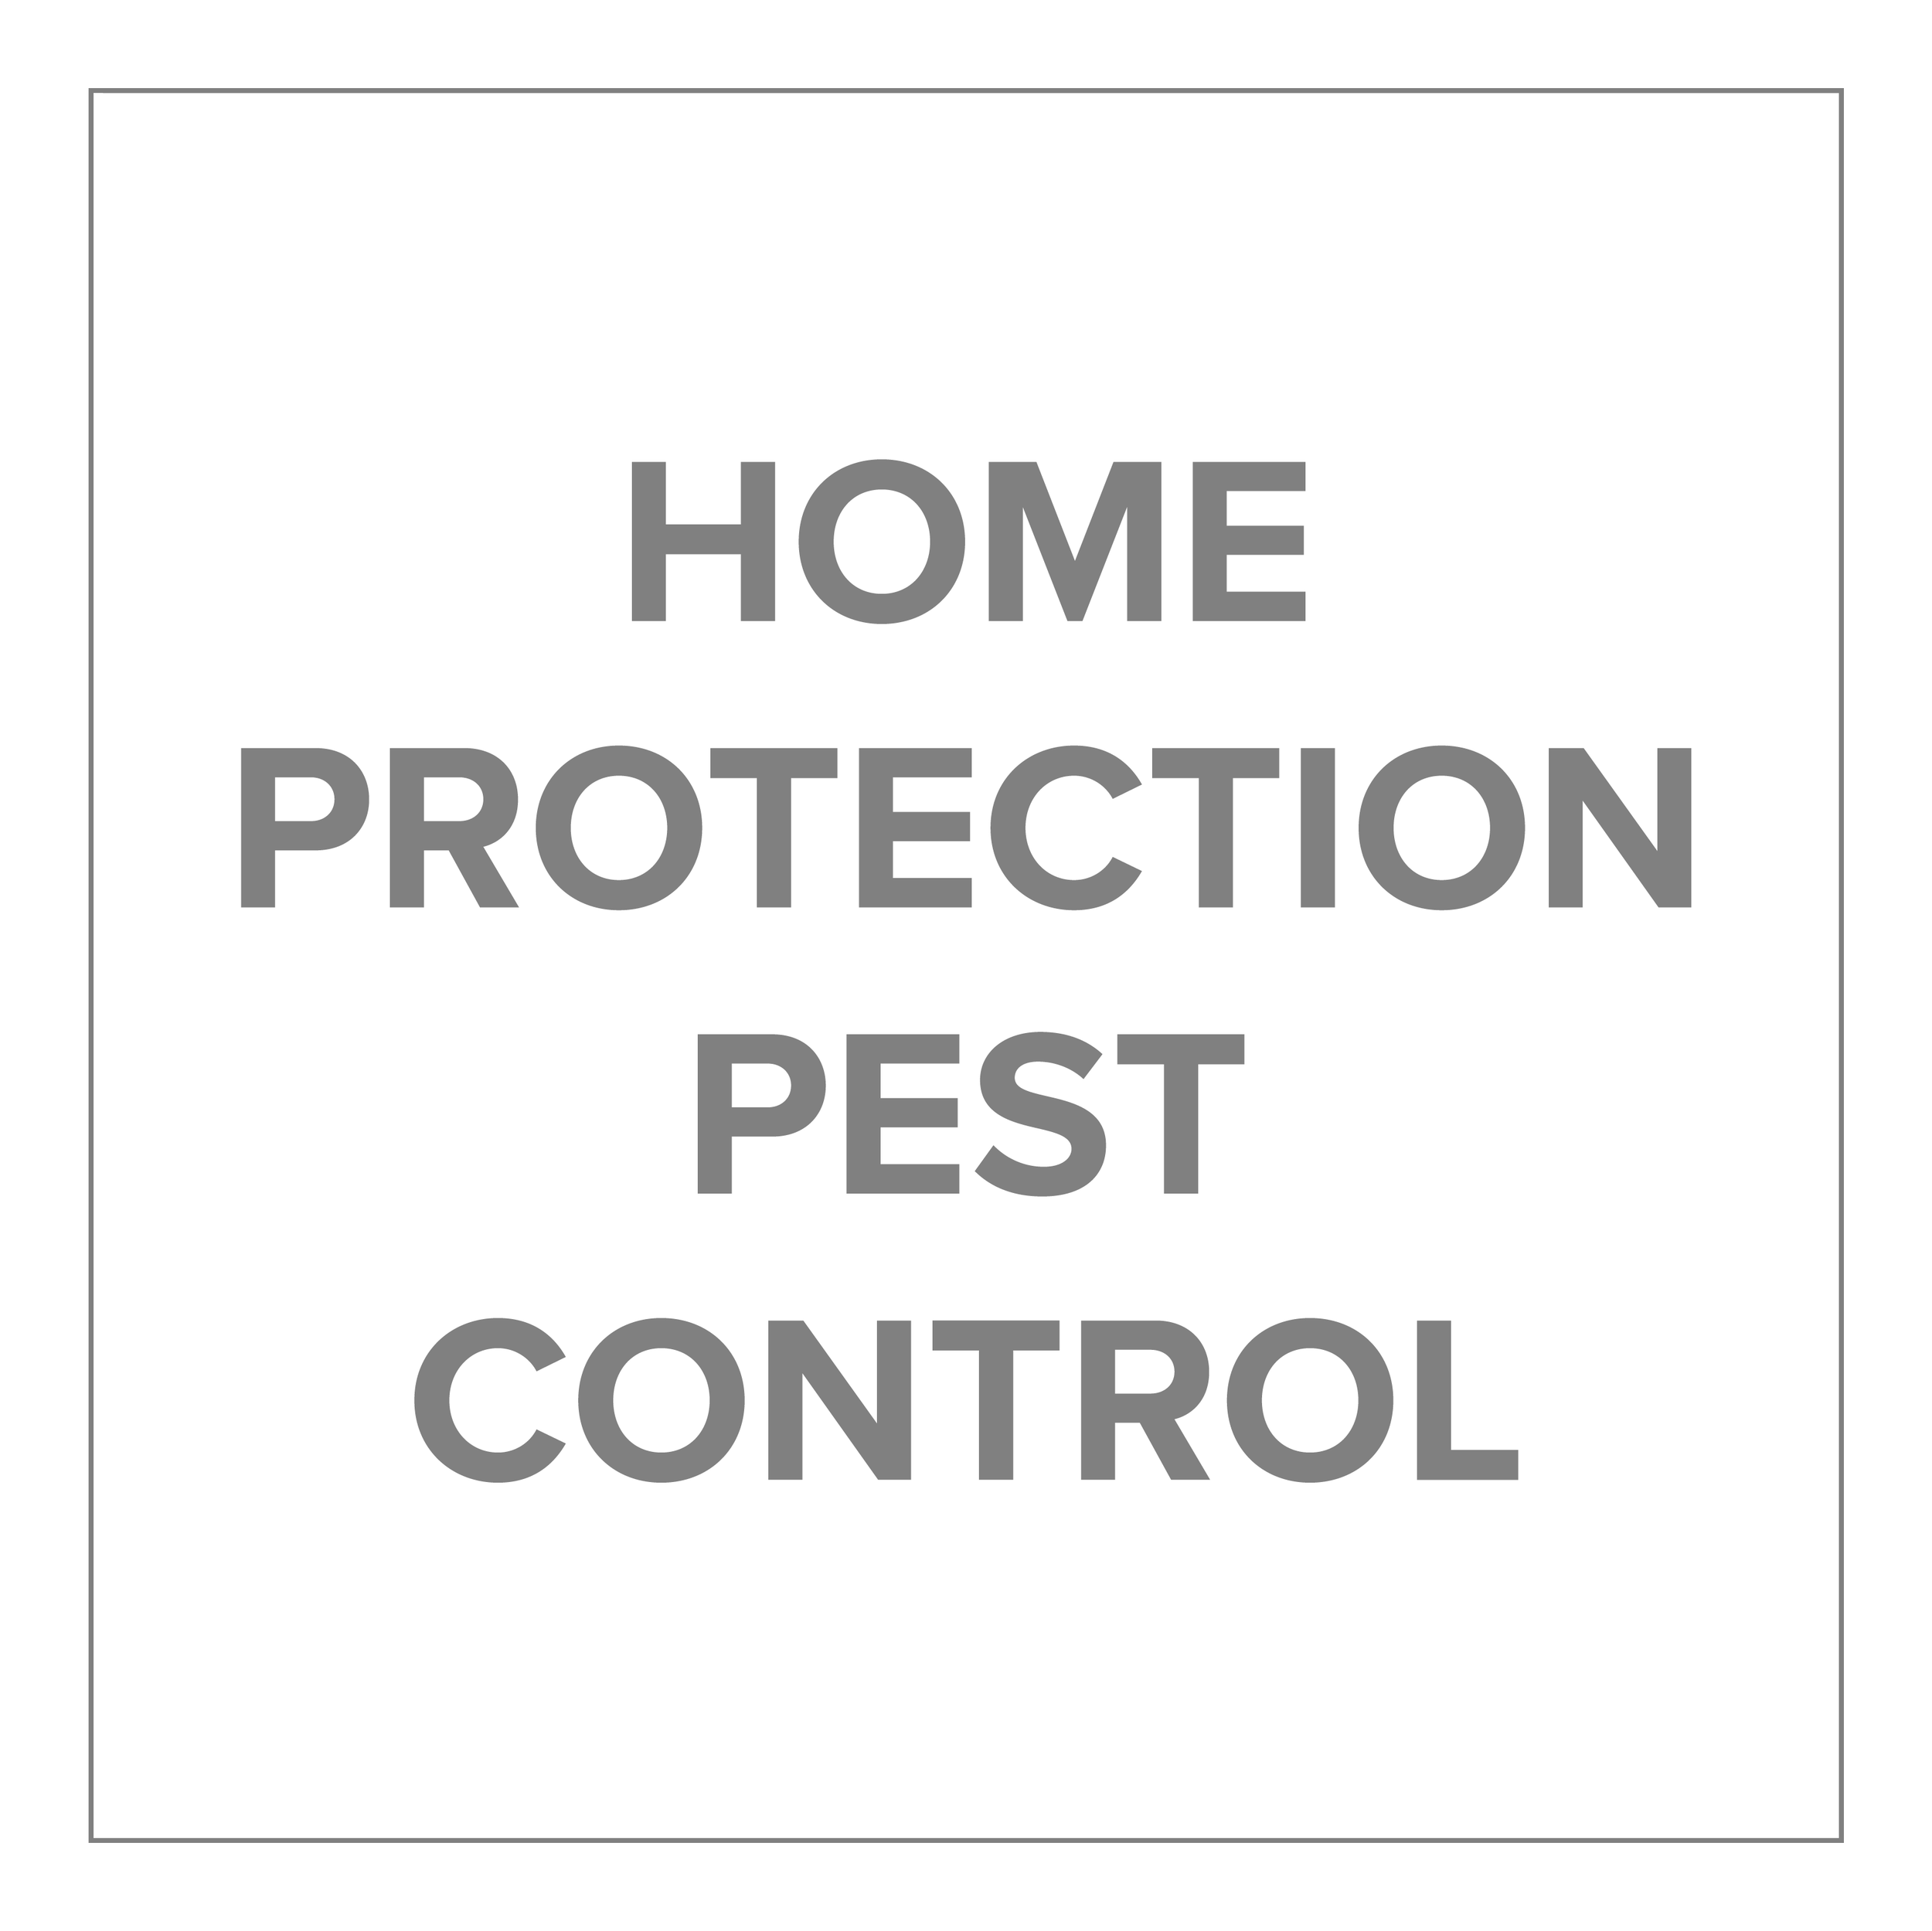 Home Protection Pest Control